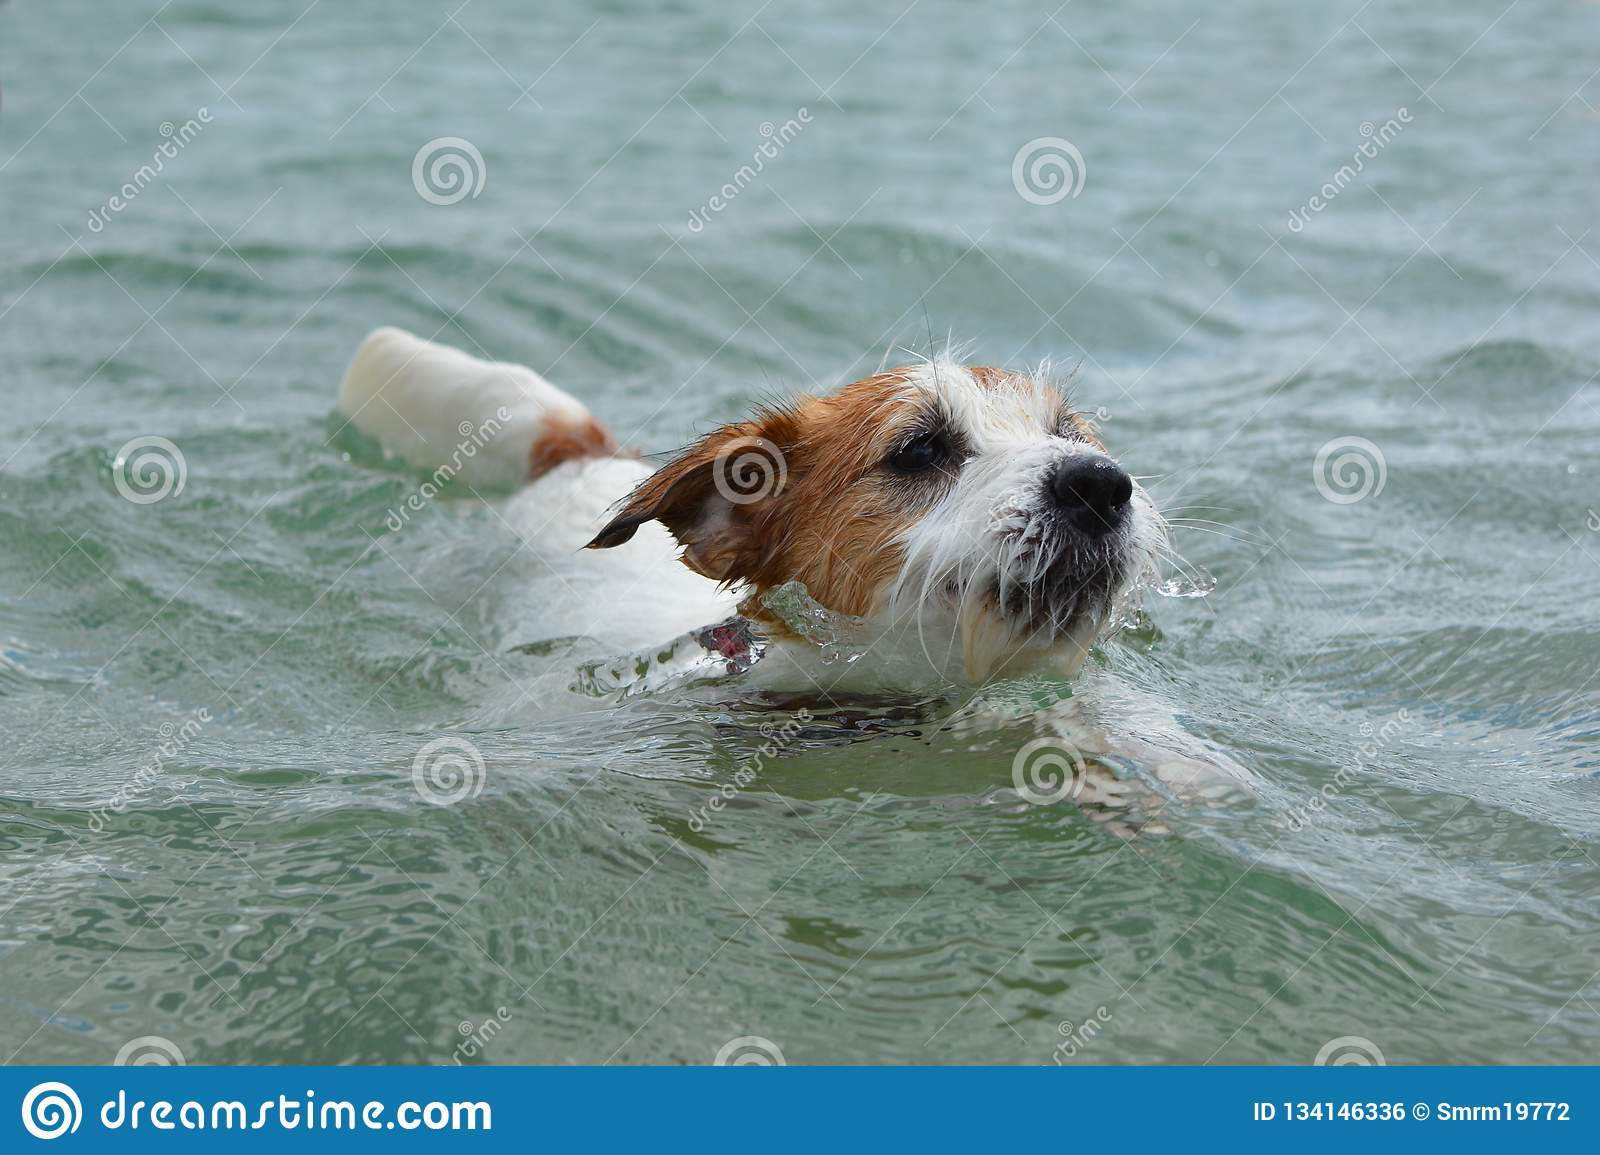 DOG SWIMMING. CUTE JACK RUSSELL PUPPY PLAYING ON WATER ENJOYING SUMMER